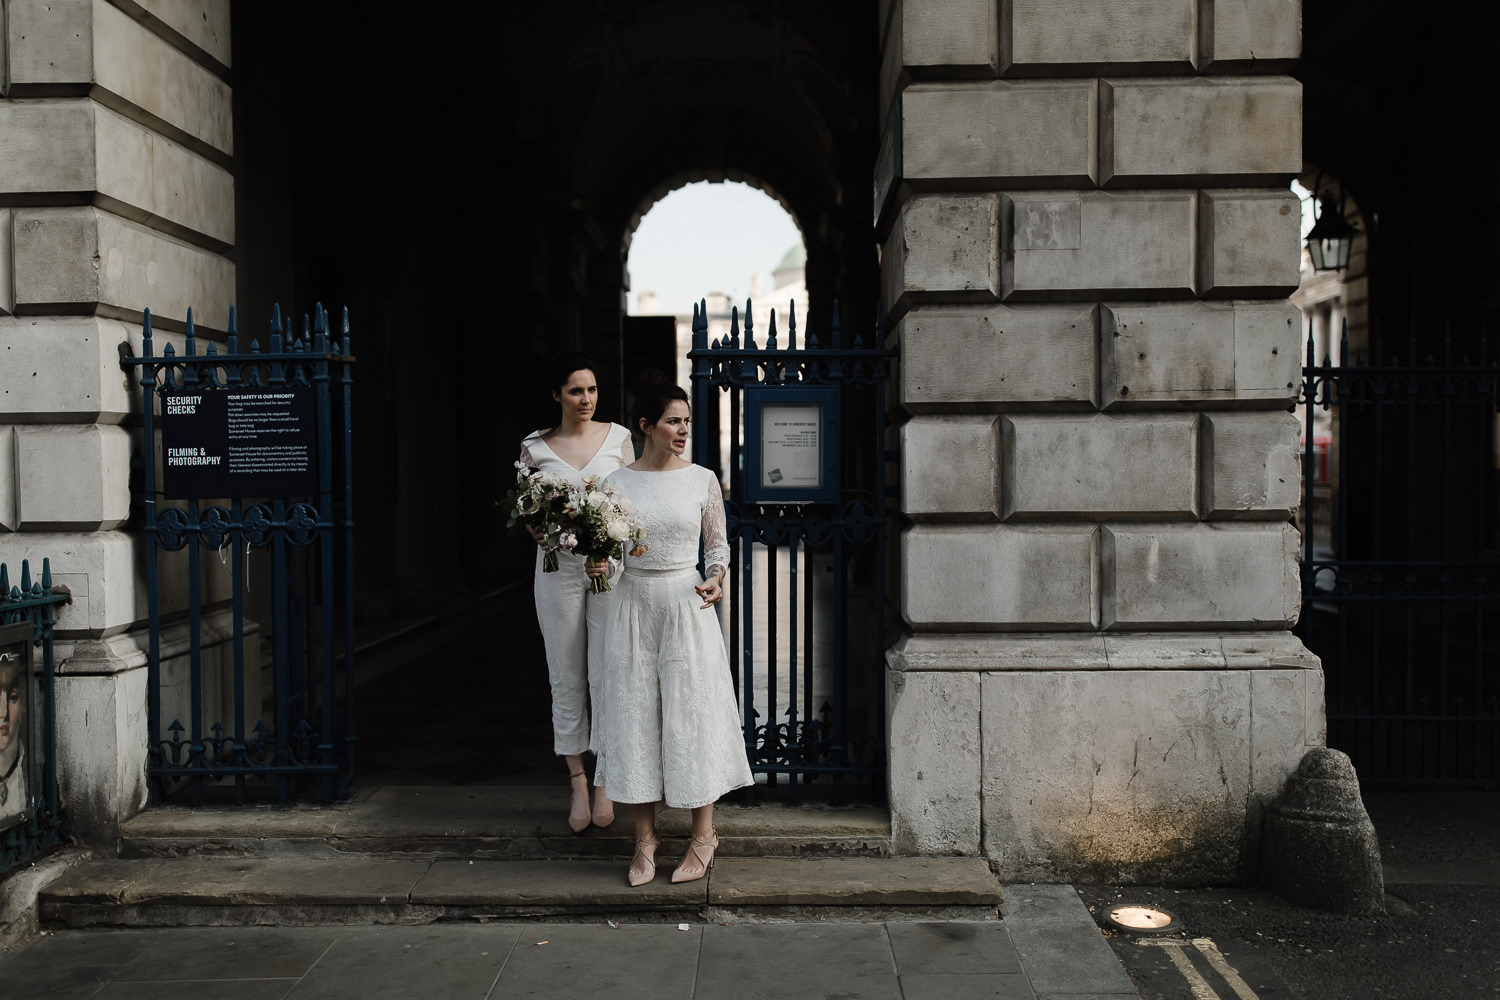 Spring_Somerset_House_London_Wedding_077.jpg